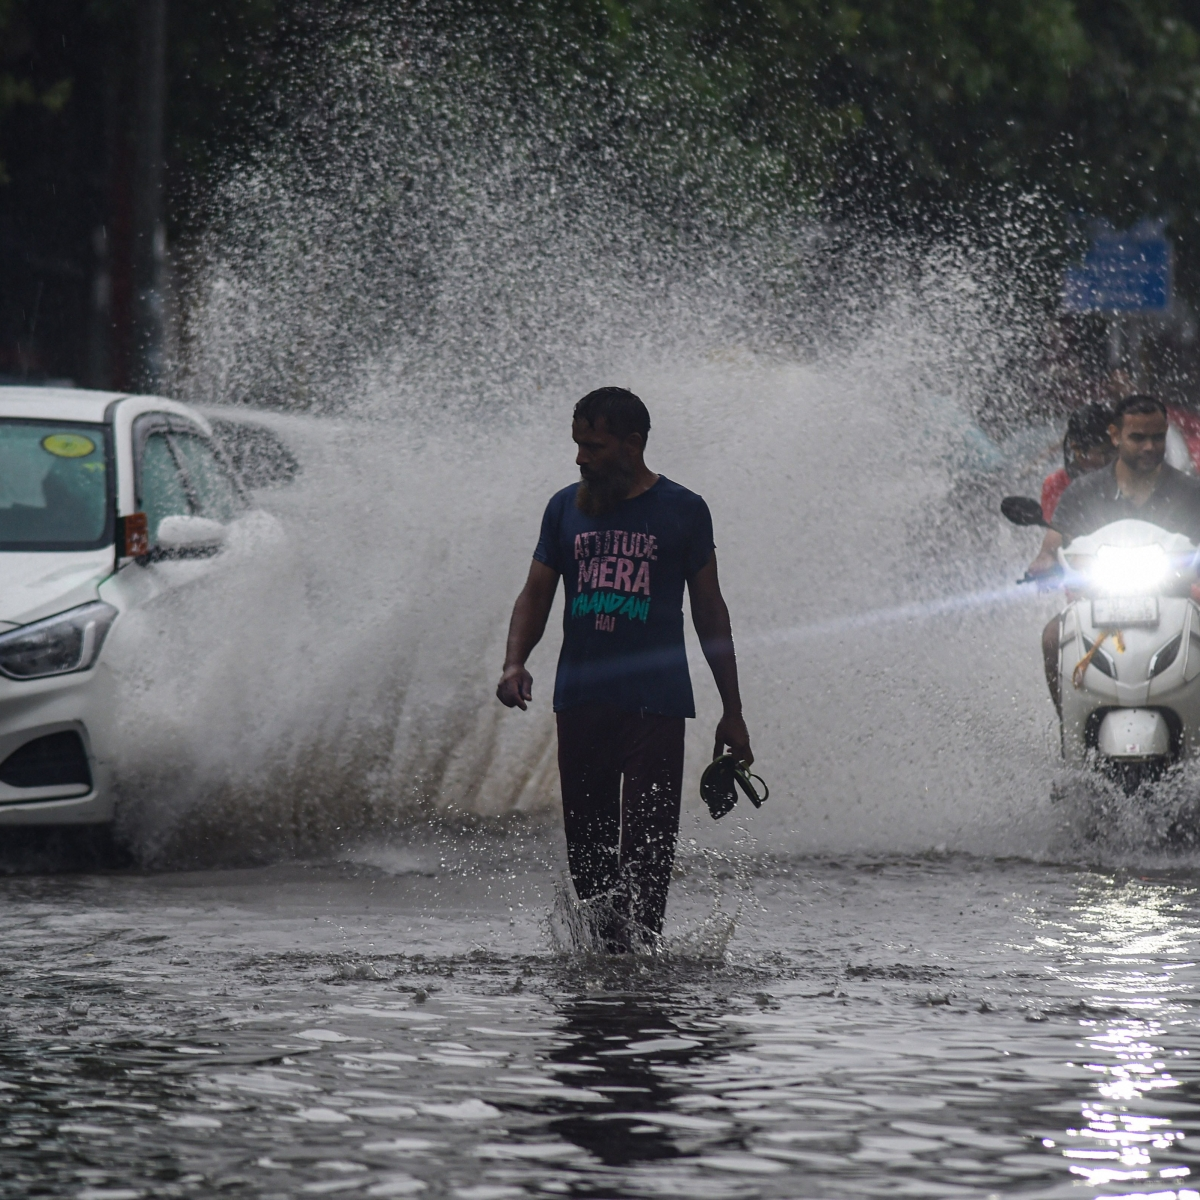 MP Weather Update: Expect light rain, heavy rain at some places